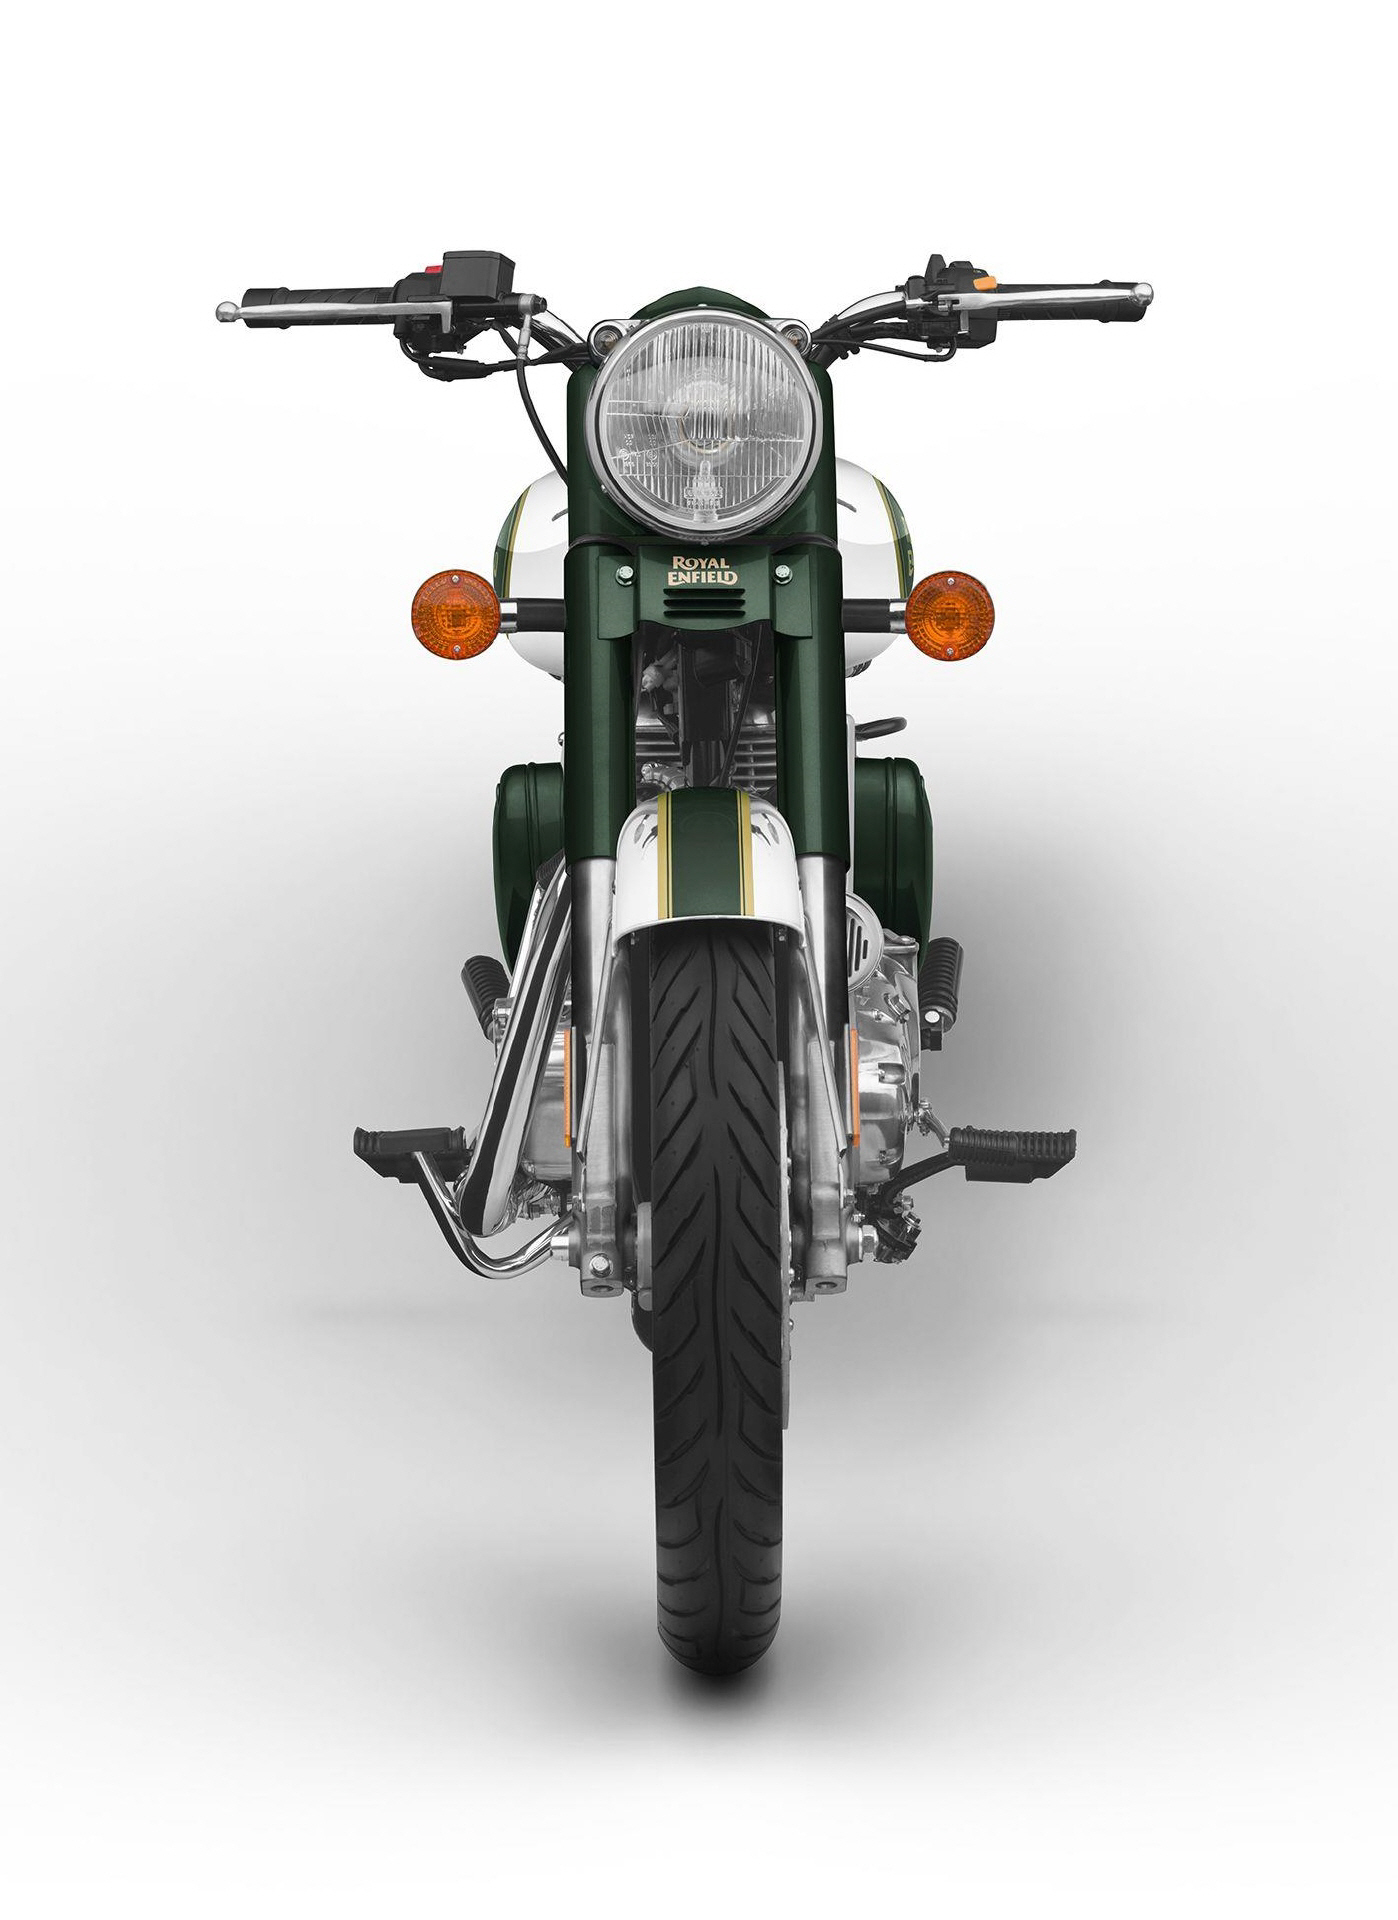 royalenfield_classic_chrome_green_03jpg